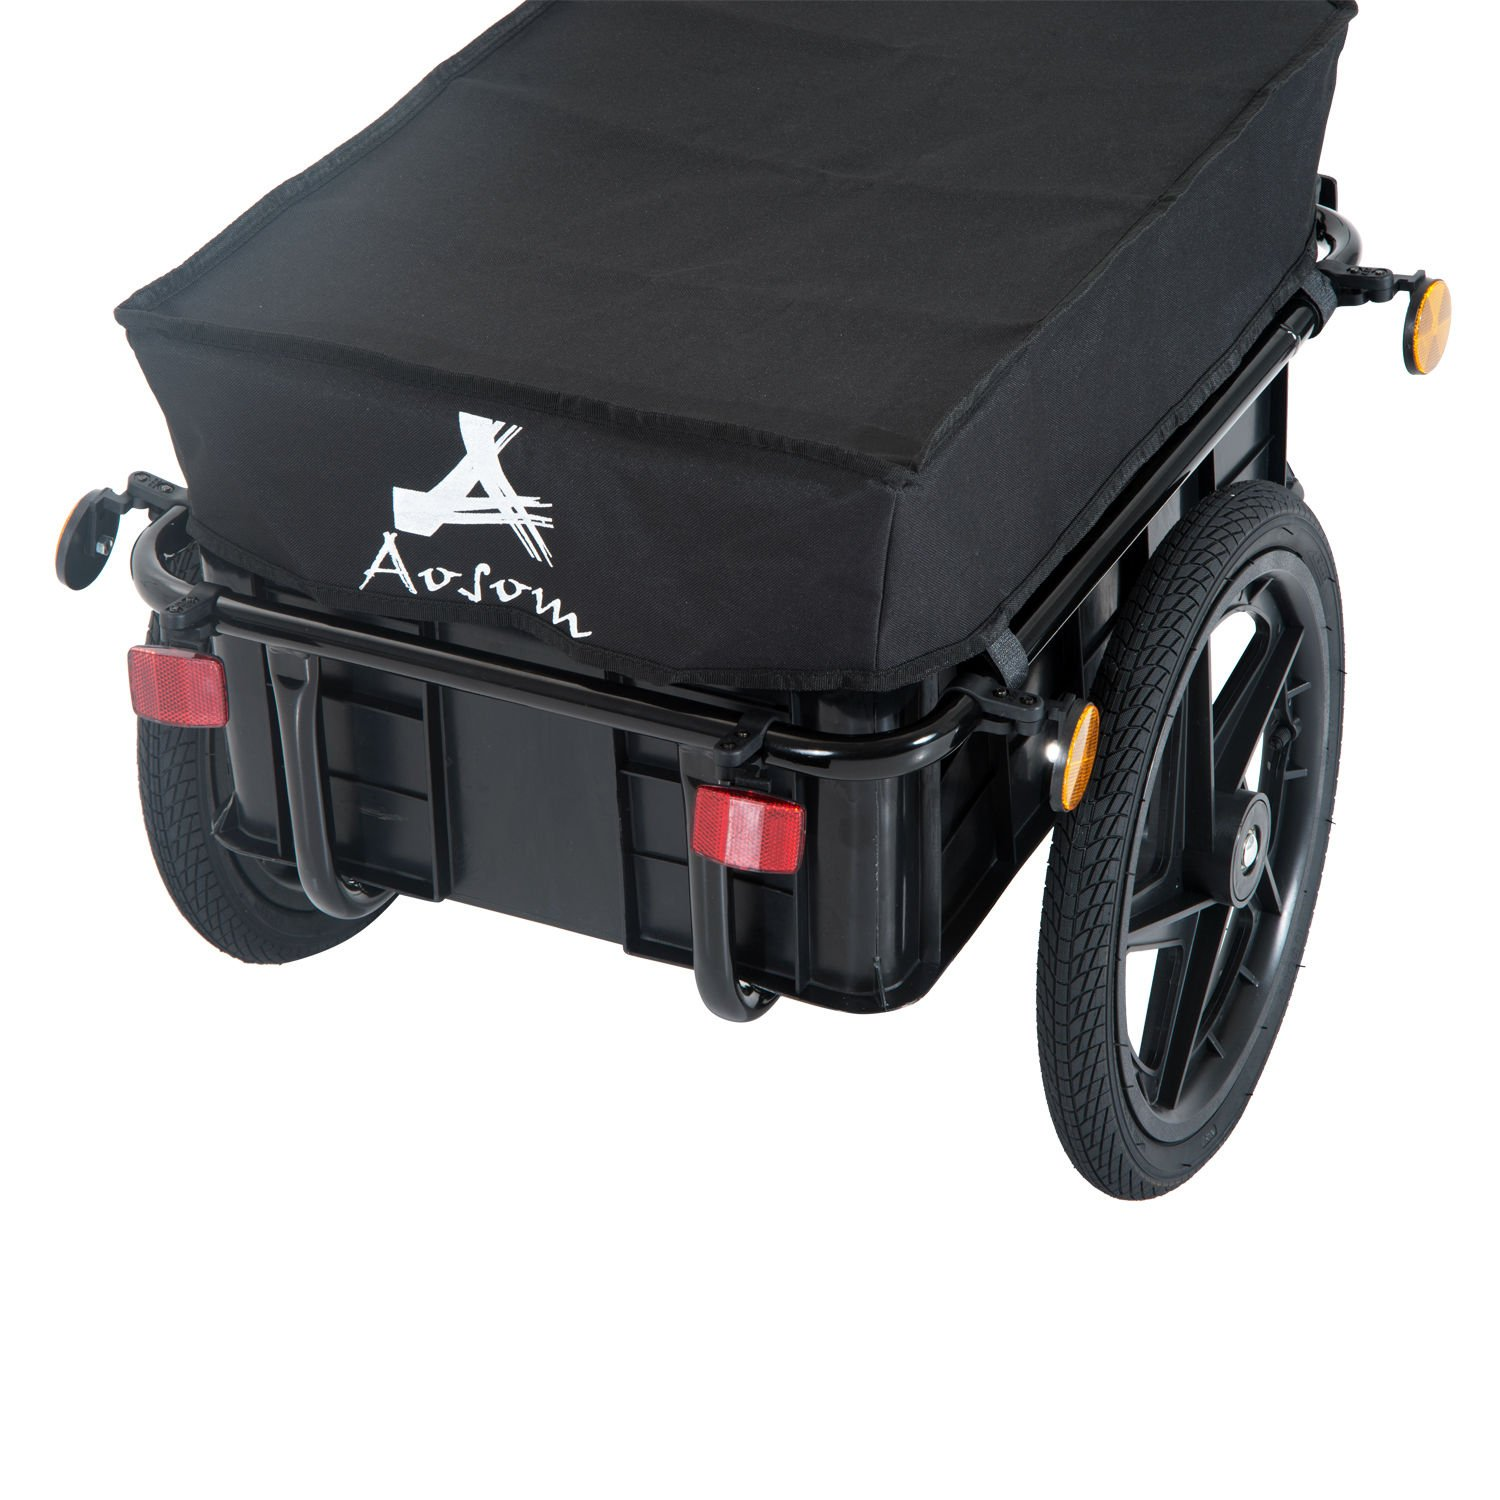 Aosom Enclosed Bicycle Cargo Trailer - Black by Aosom (Image #5)